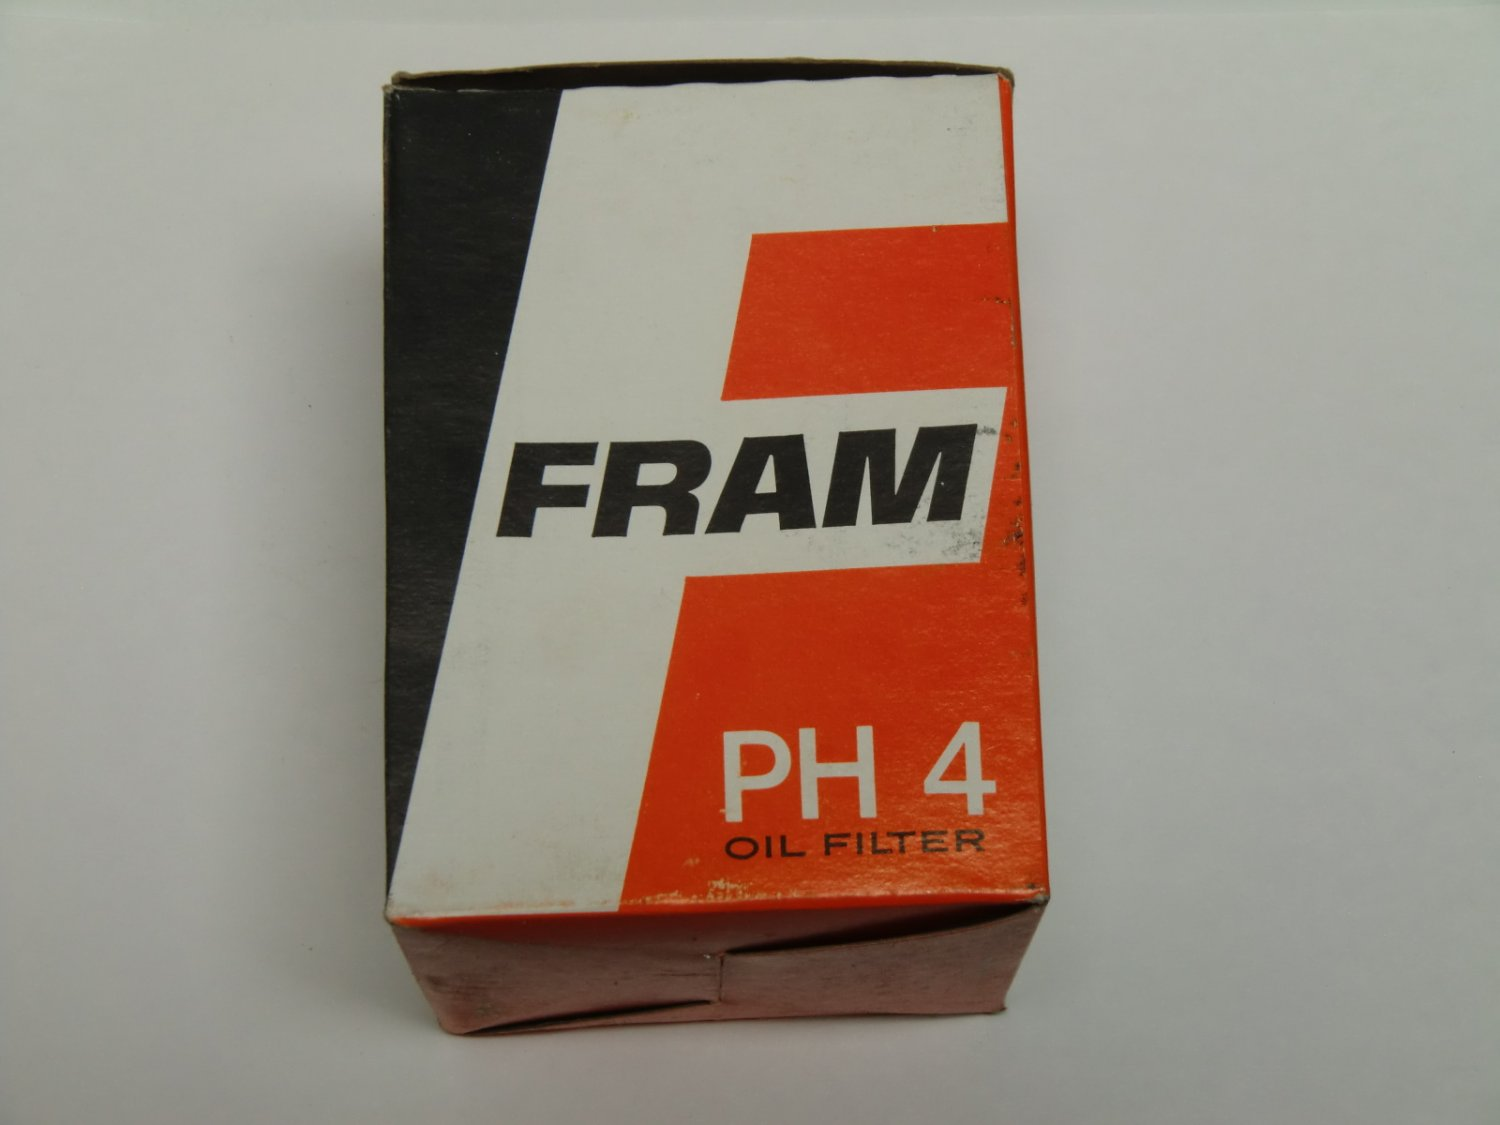 NOS Fram PH4 Oil Filter 5575425 1960 Chevrolet Corvair, model 700, 6 cyl., 4 dr